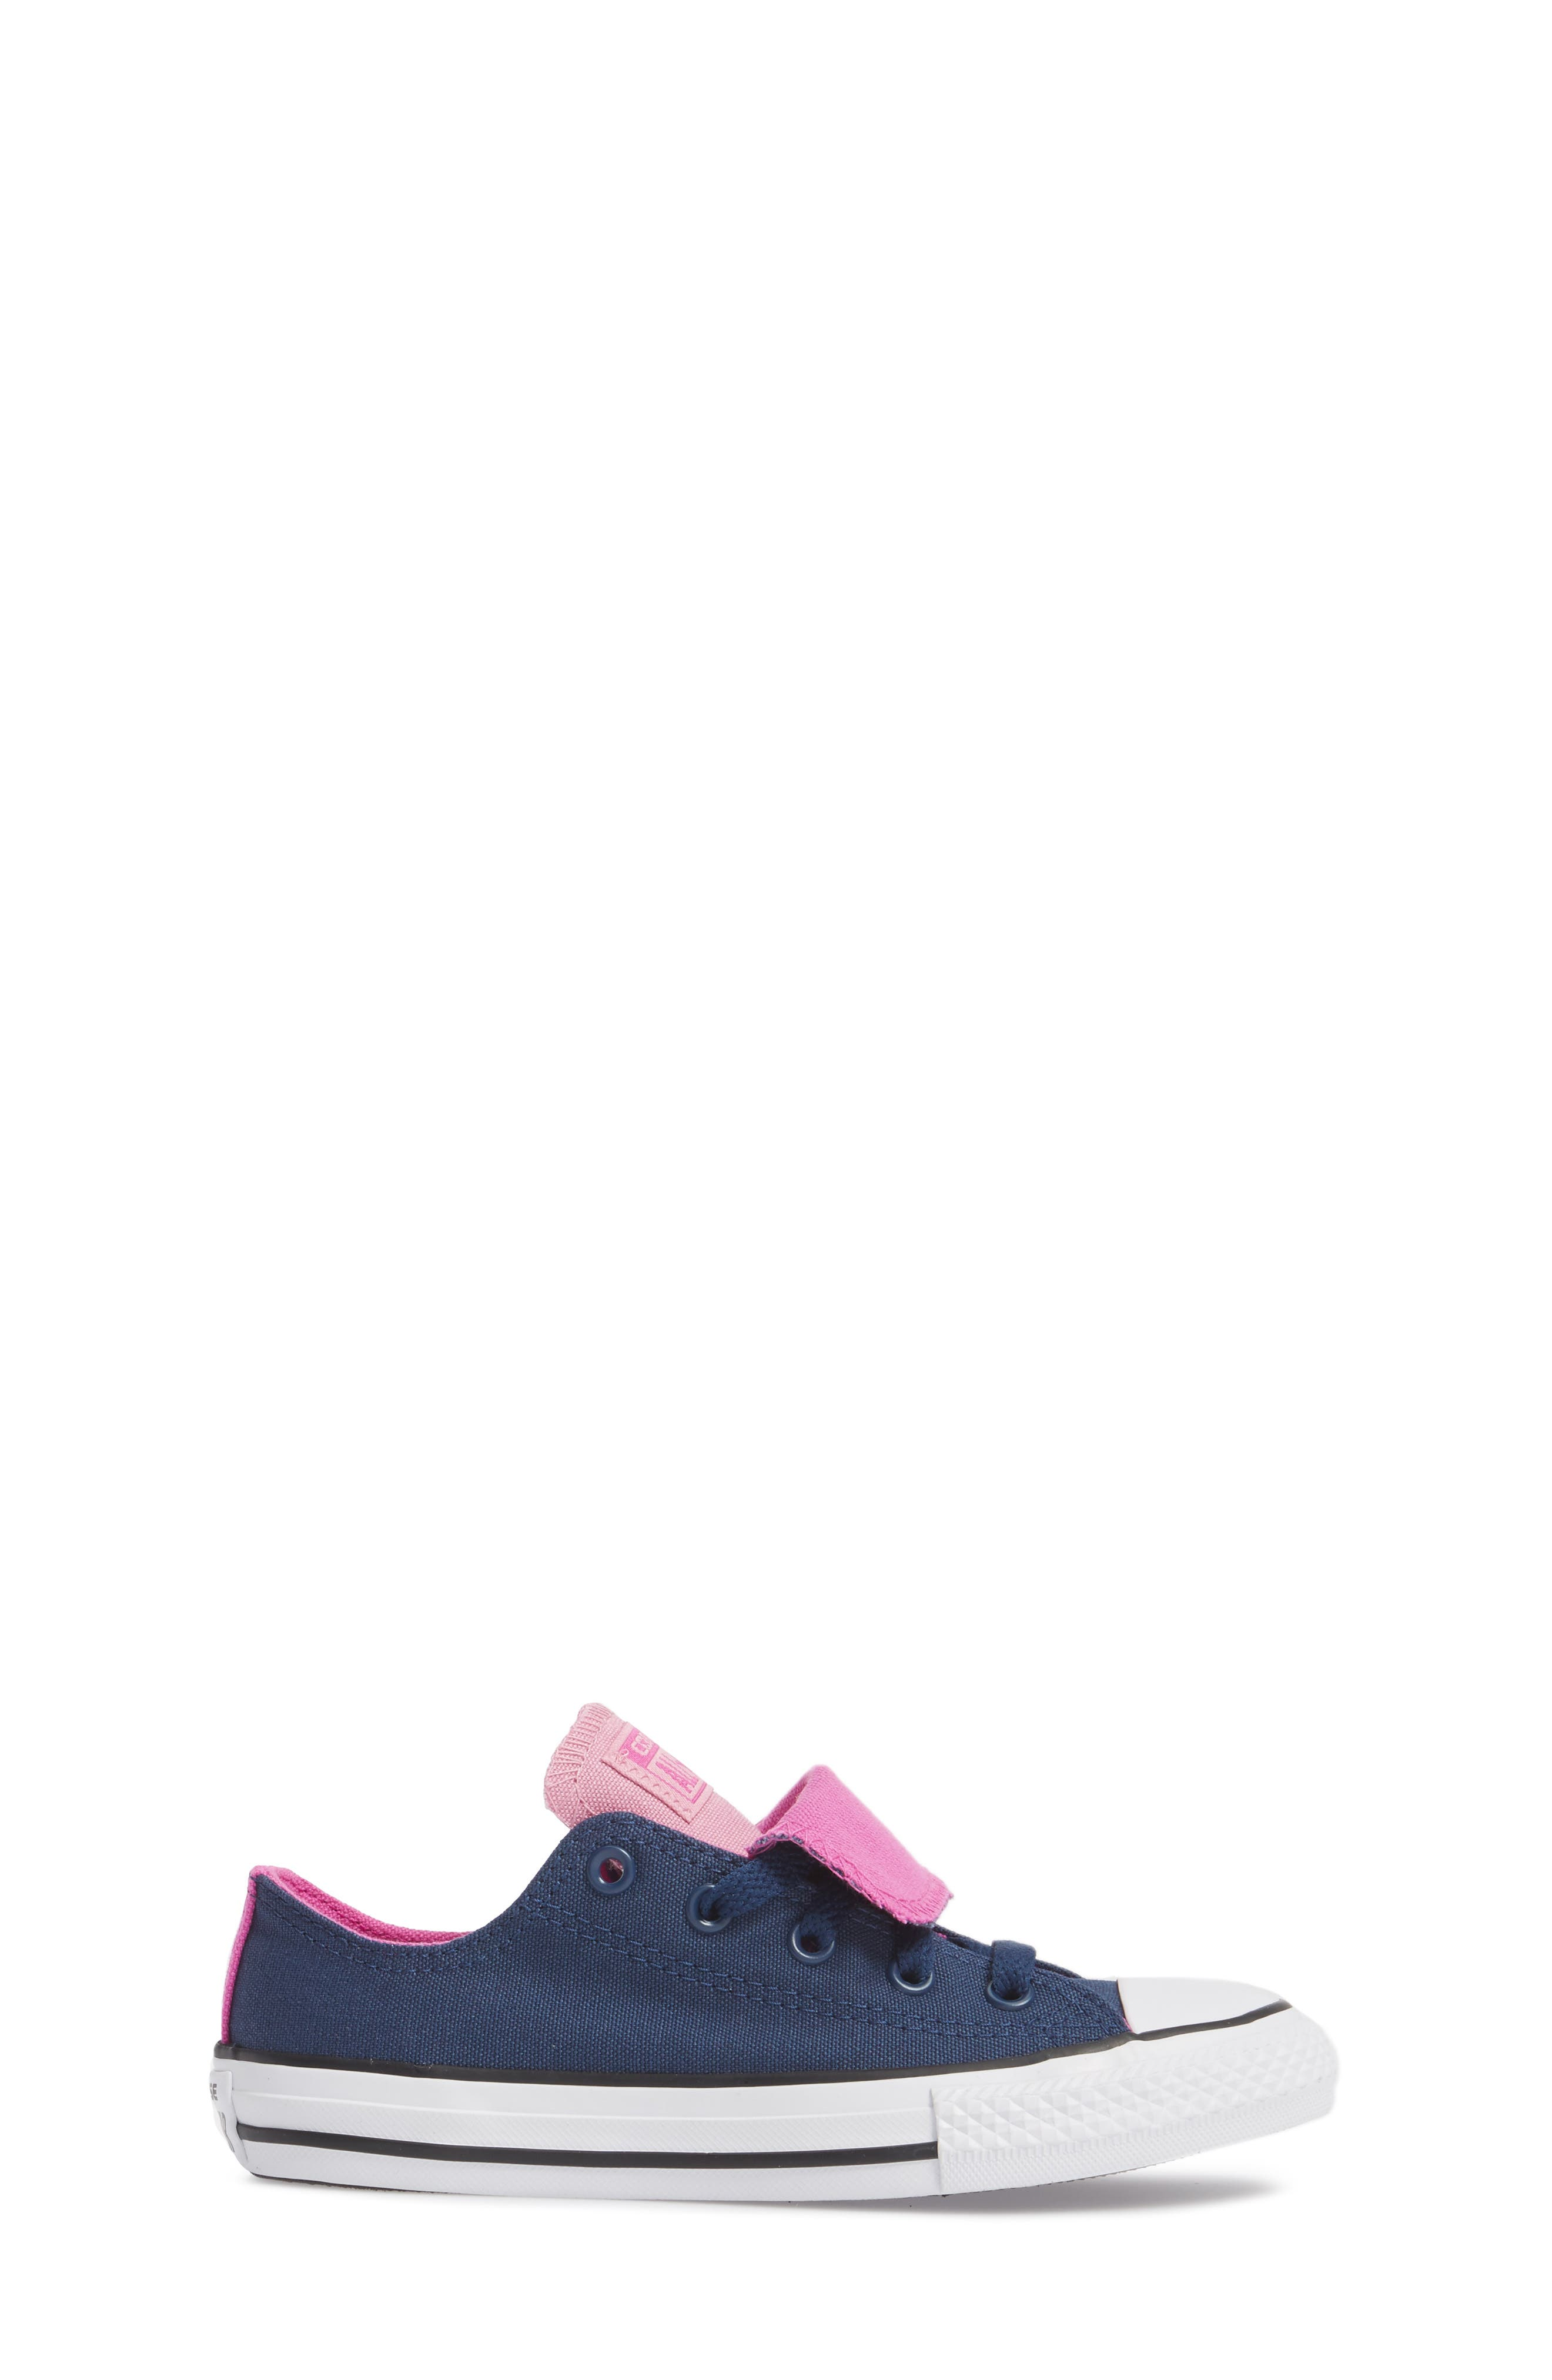 All Star<sup>®</sup> Double Tongue Sneaker,                             Alternate thumbnail 3, color,                             Navy